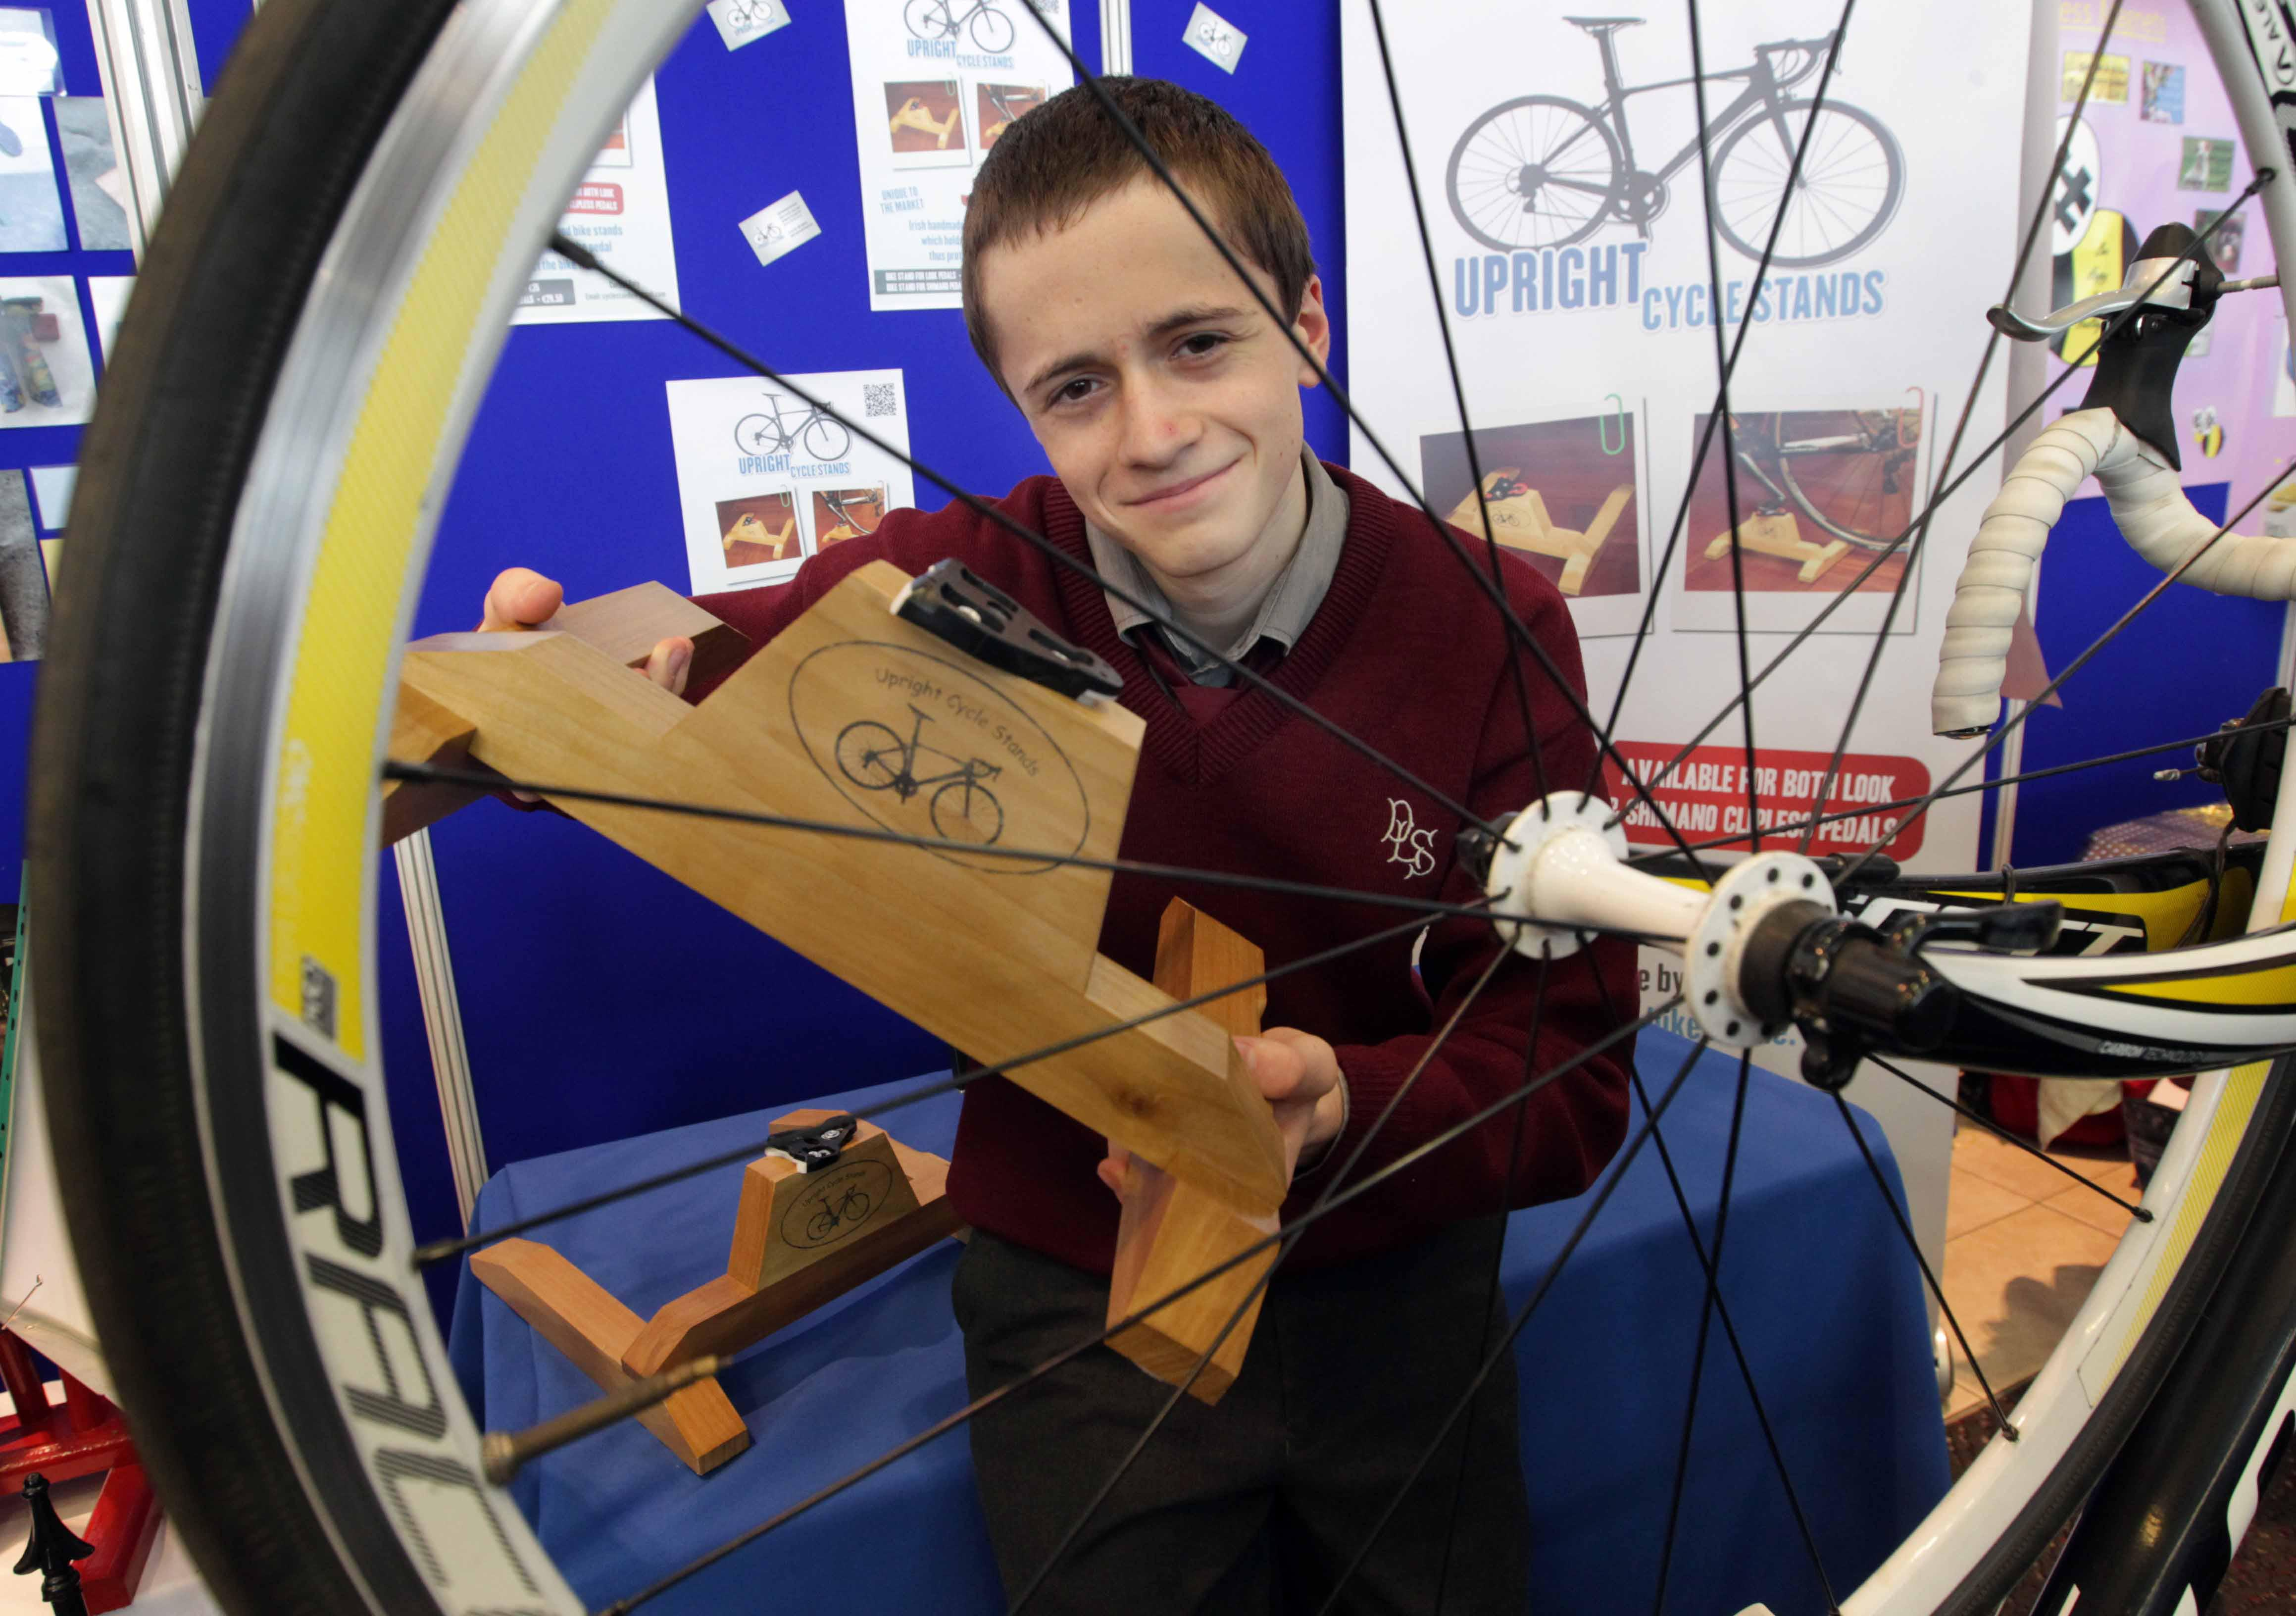 Cathal Daly (16) of 'Upright Cycle Stands' from De la Salle College, Waterford City won the Senior Category of the Student Enterprise Awards 2014 NewsPhotography: Mark Stedman from Photocall Ireland